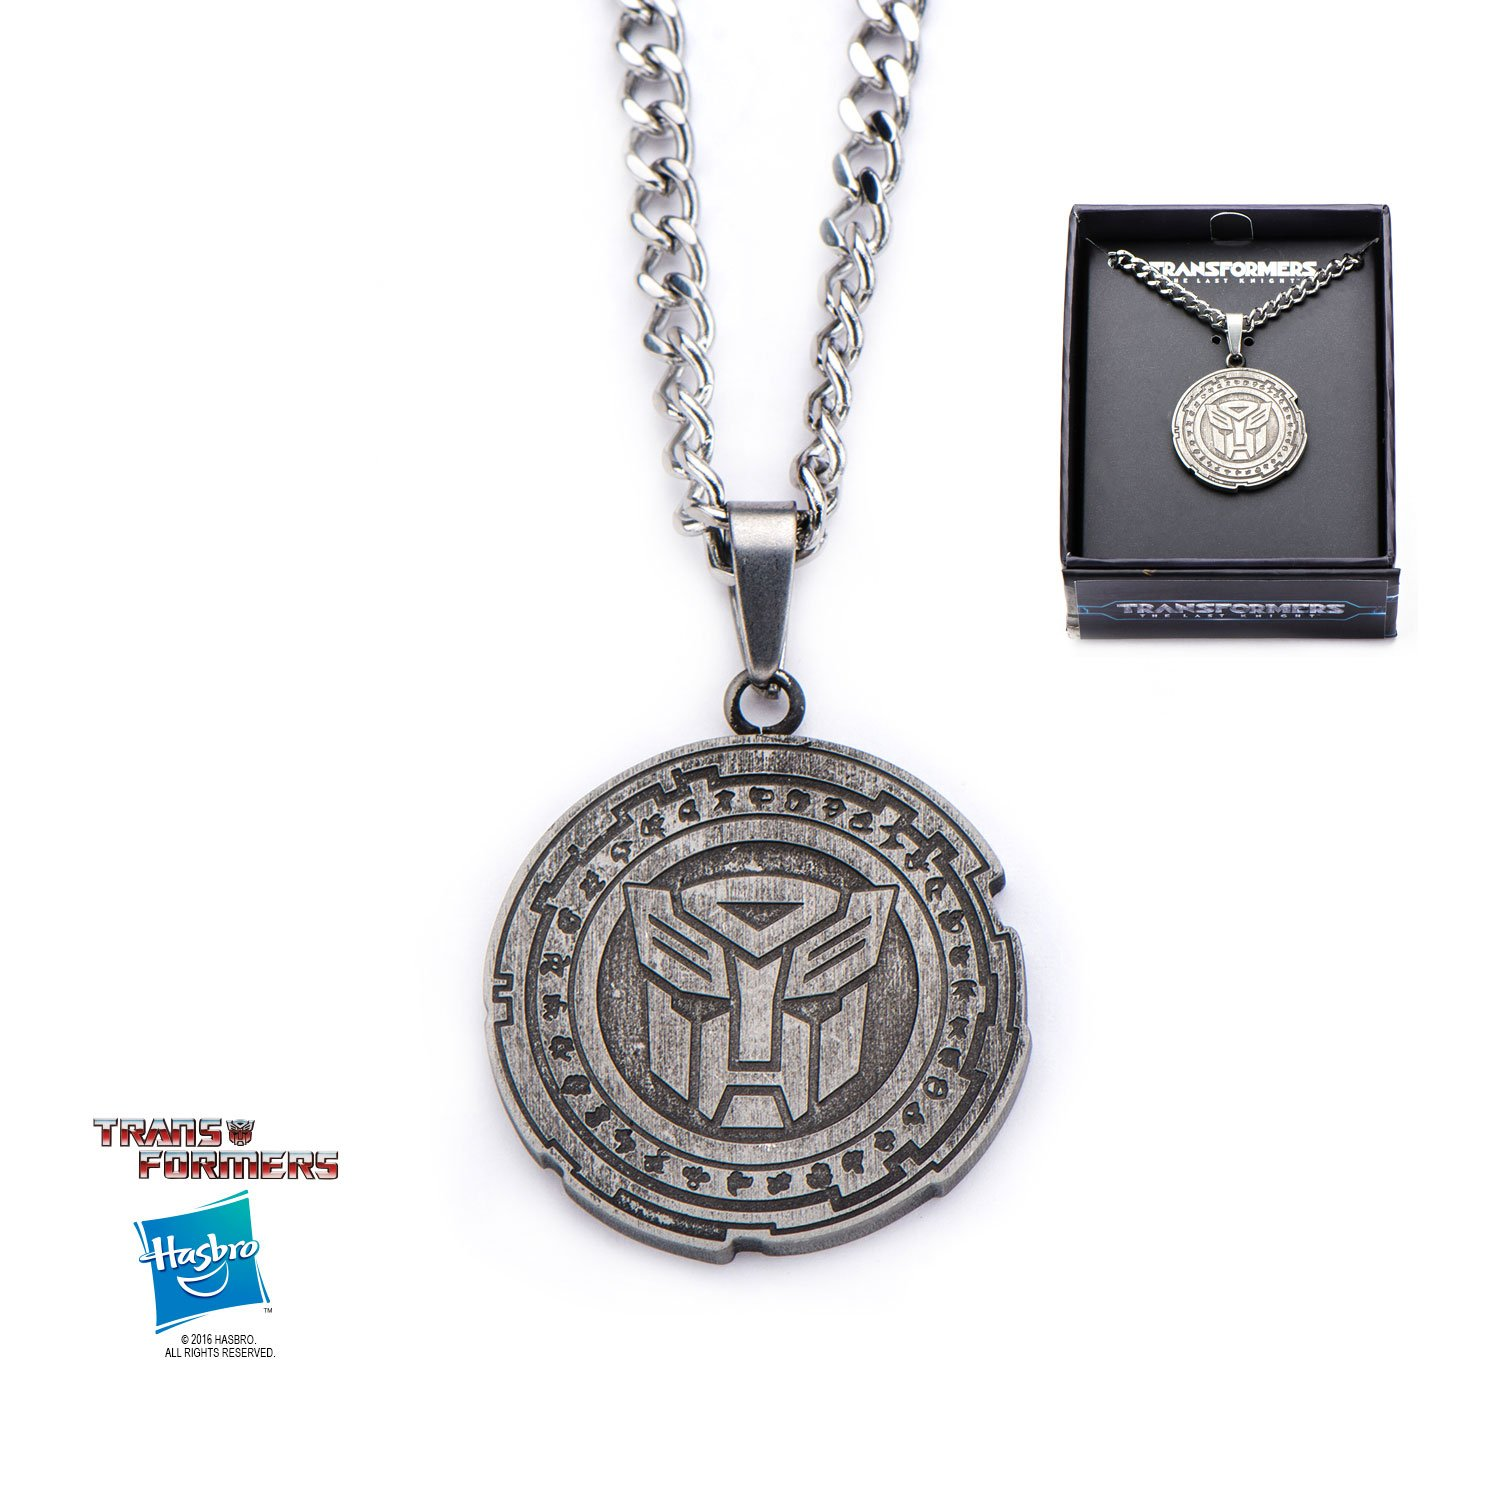 Transformers The Last Knight Autobot Stainless Steel Pendant Necklace w/Gift Box by Superheroes Brand